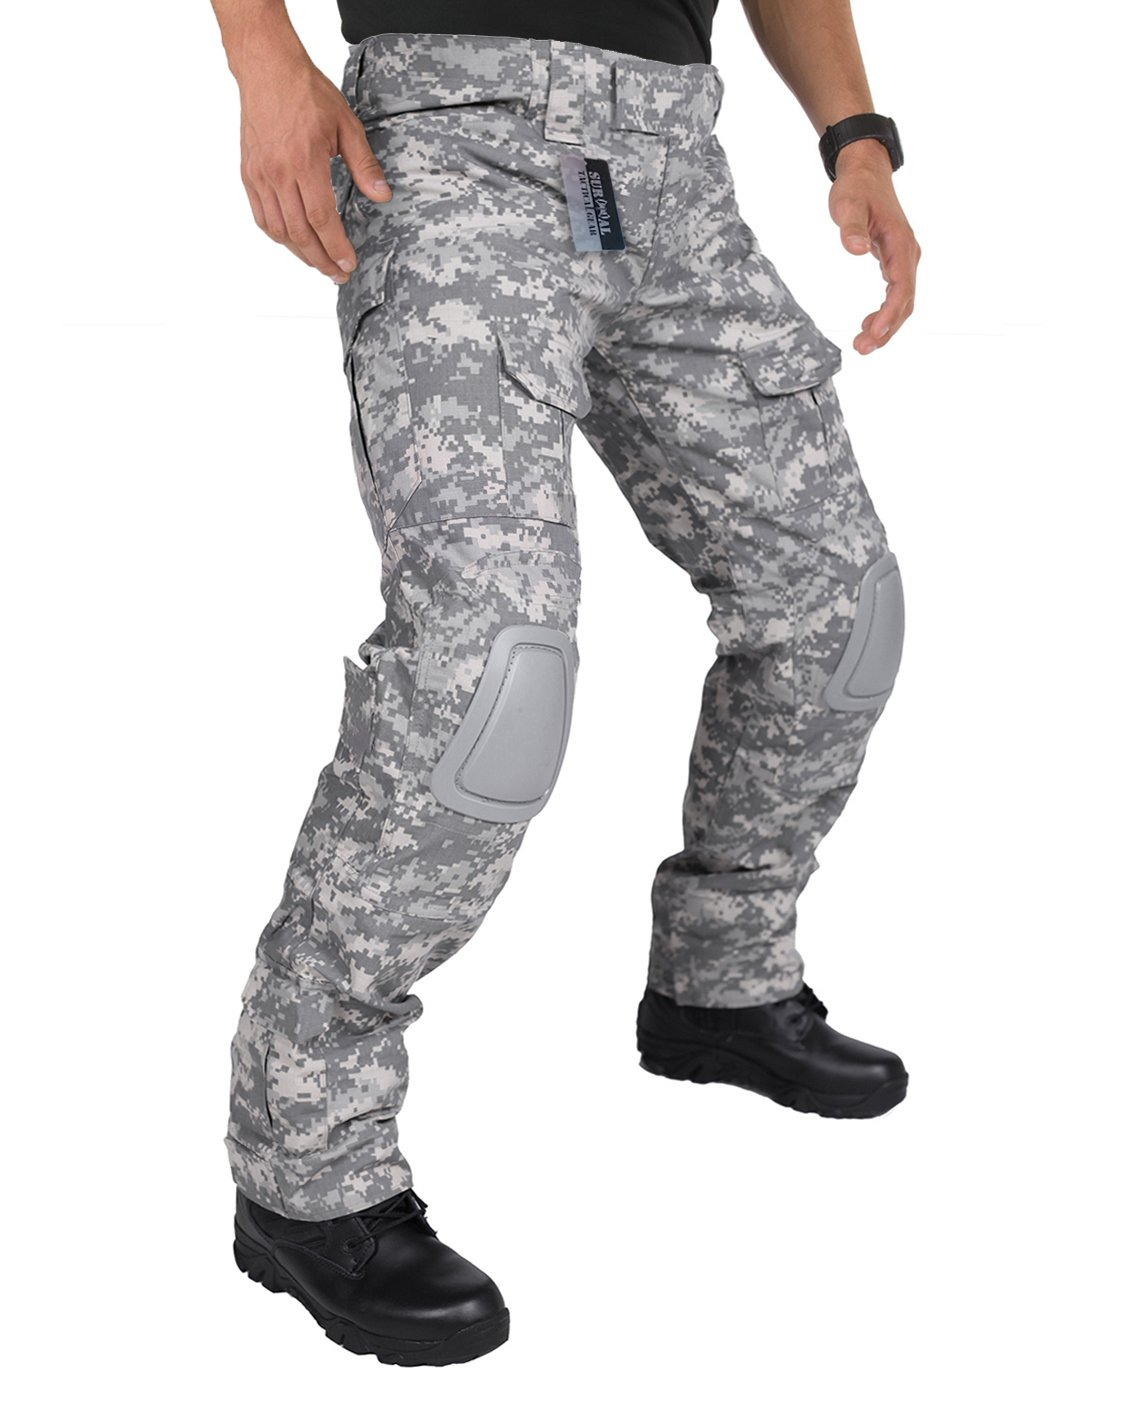 ZAPT Tactical Pants with Knee Pads Airsoft Camping Hiking Hunting BDU Ripstop Combat Pants 13 Kinds Army Camo Uniform Military Trousers (ACU, XXL40) by ZAPT